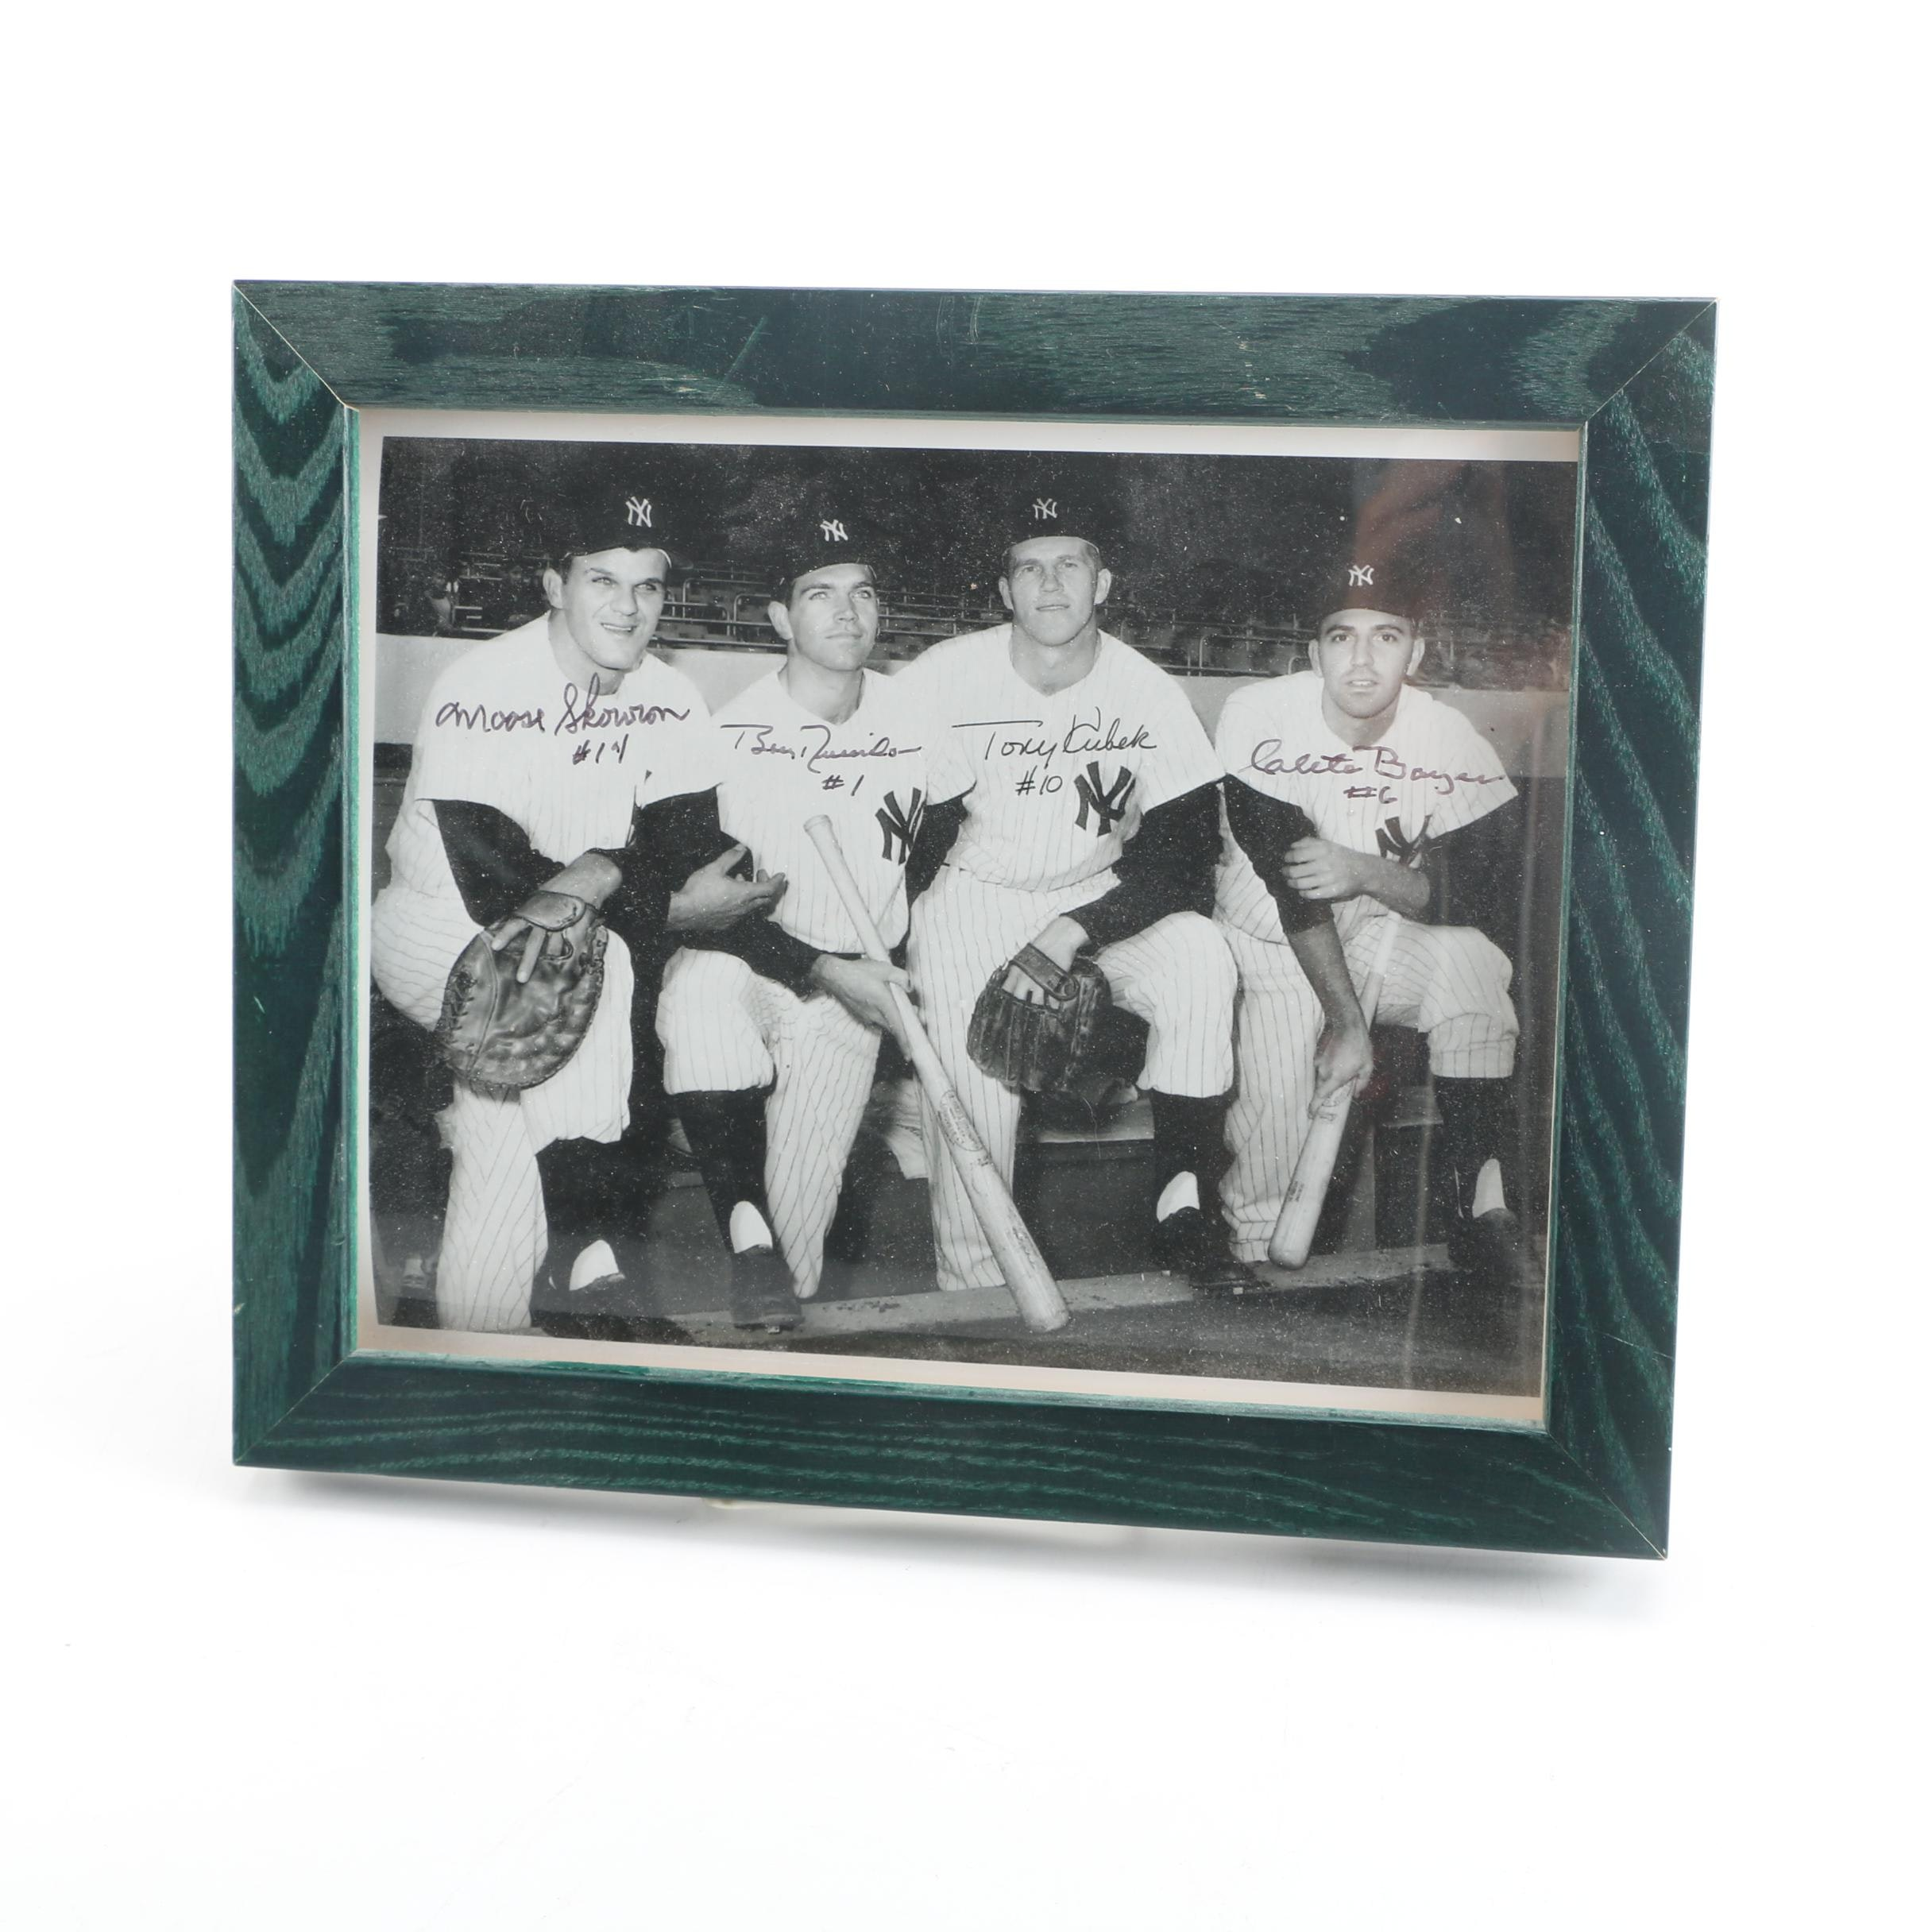 New York Yankees Autographed Framed Photograph Including Billy Martin